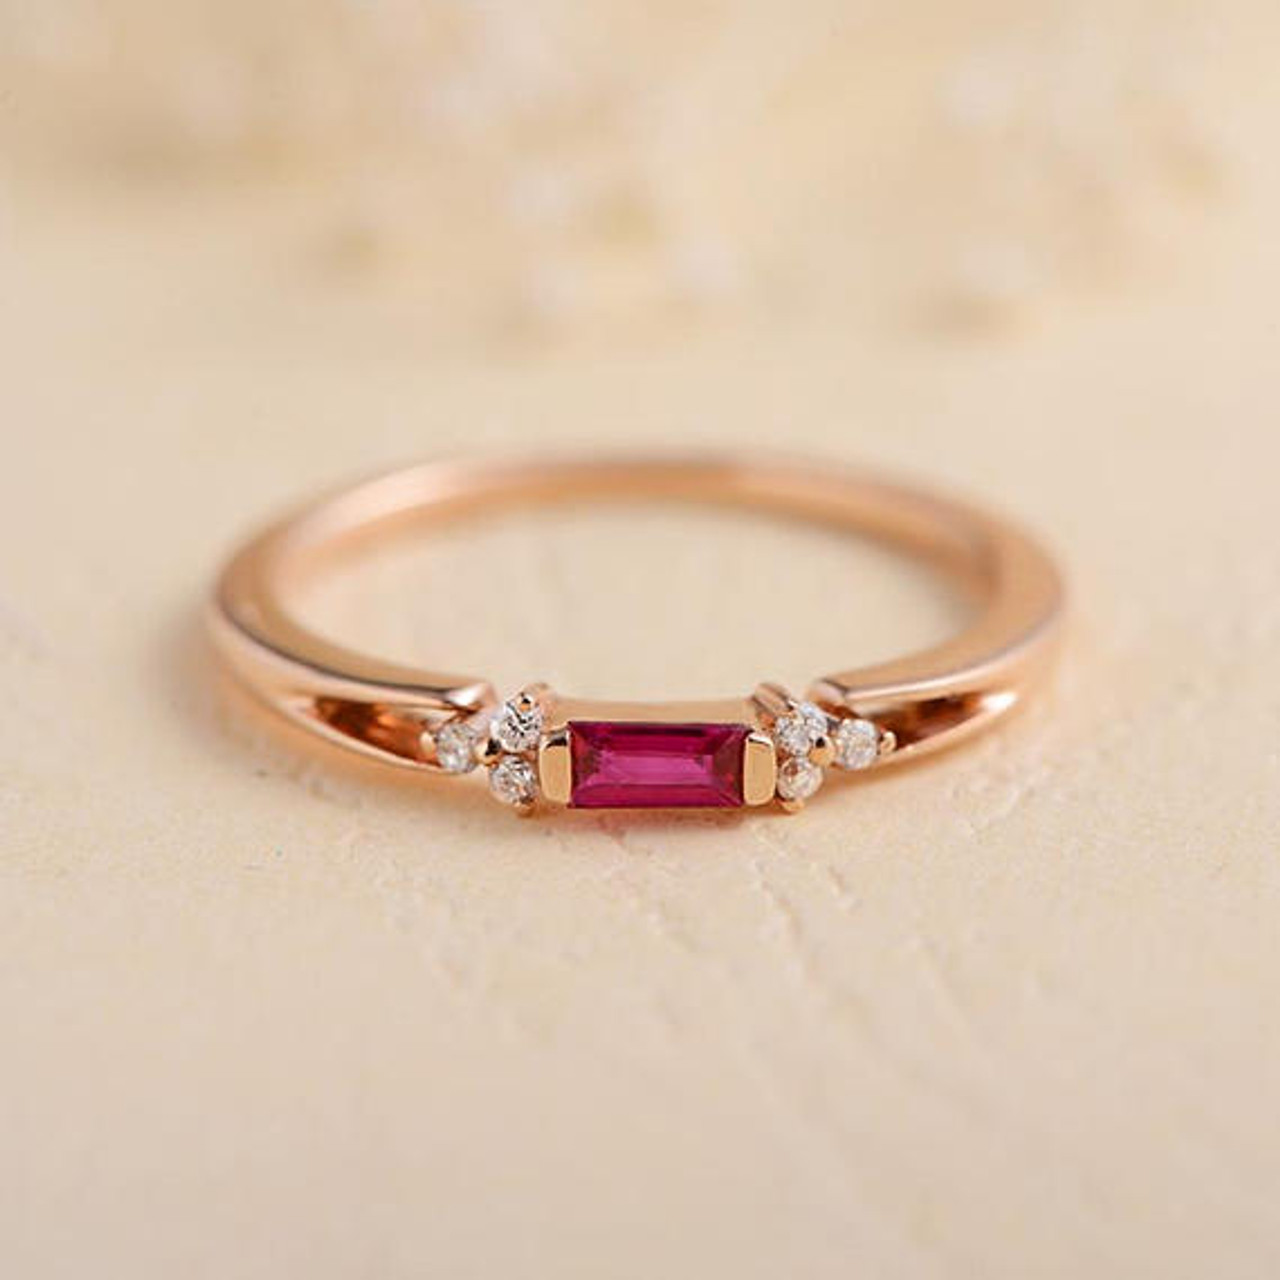 engagement set vintage natural rose bands ring bezel women red wedding rings solid antique ruby gold item